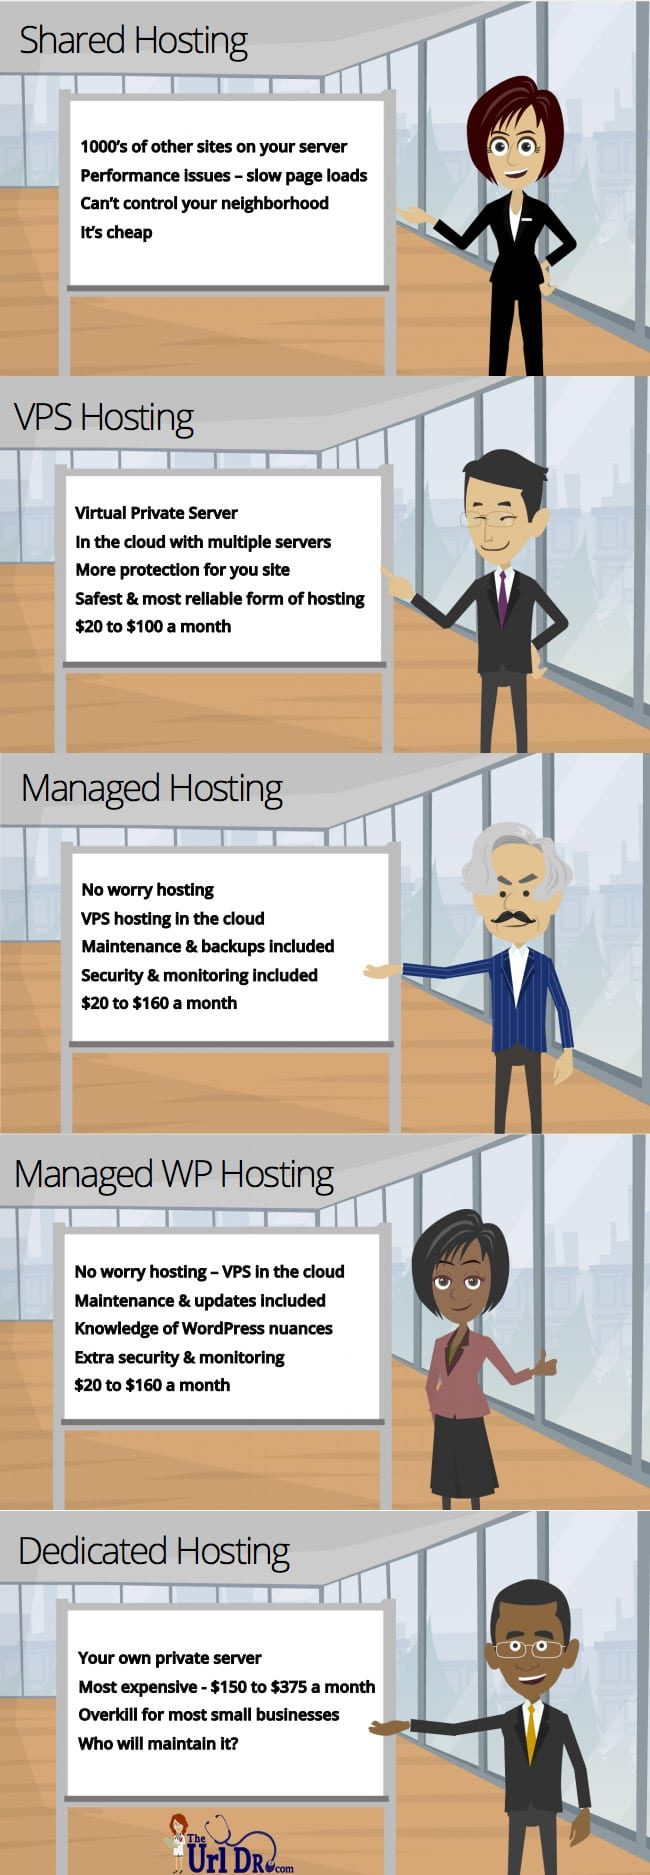 Hosting Types Infographic